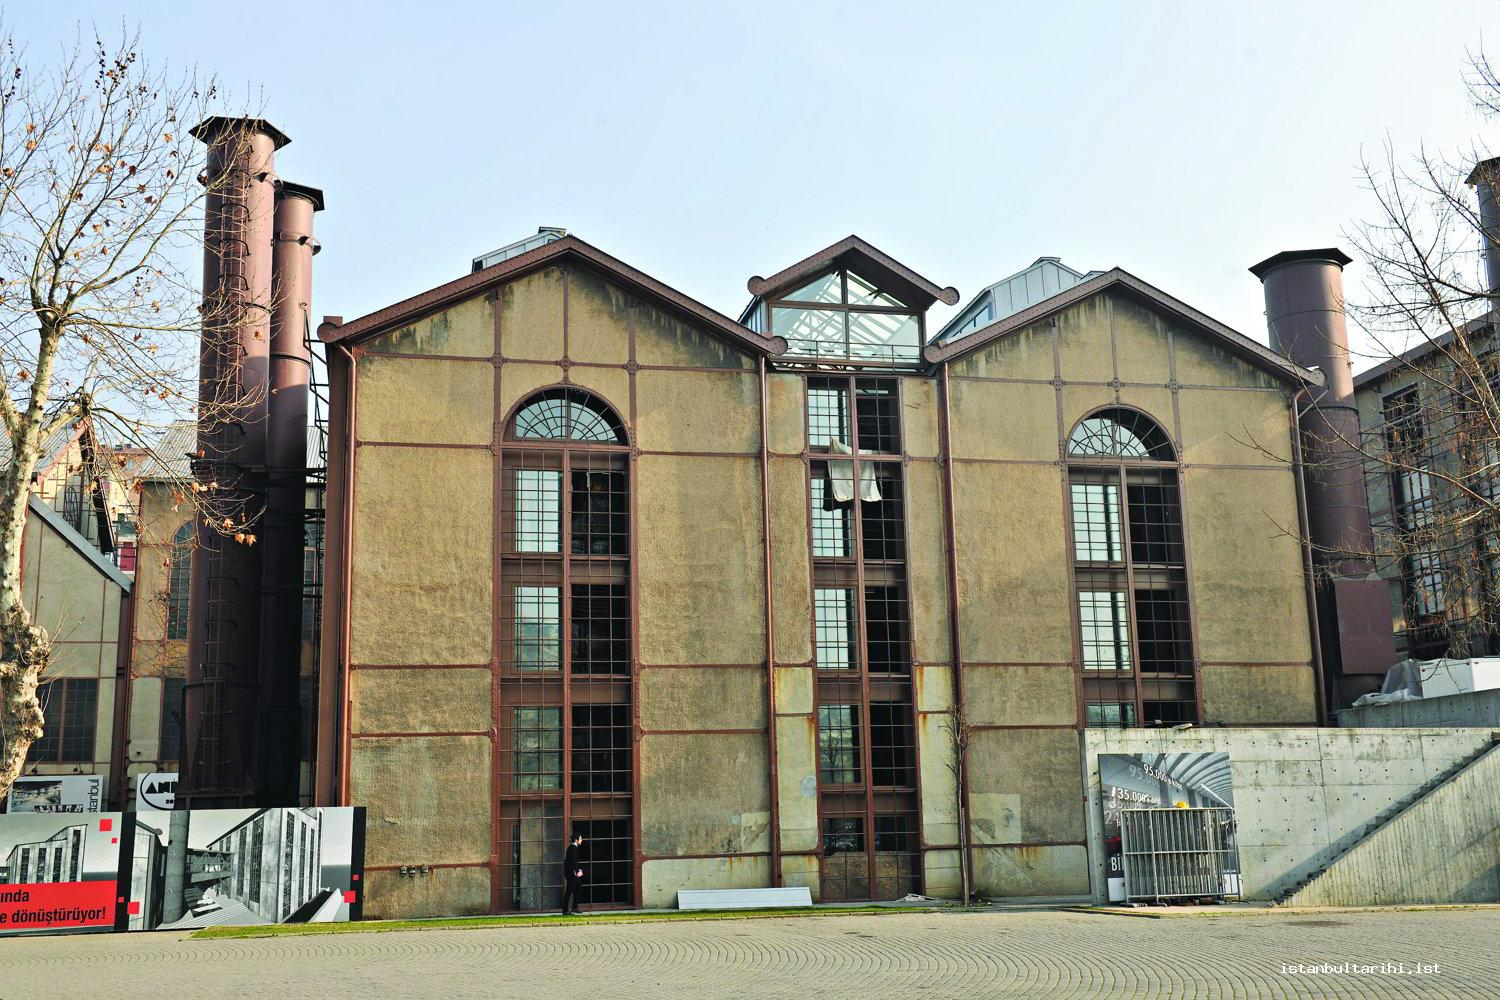 7- Silahtarağa Electric Factory which has been turned into Santral Istanbul / Energy Museum by Bilgi University